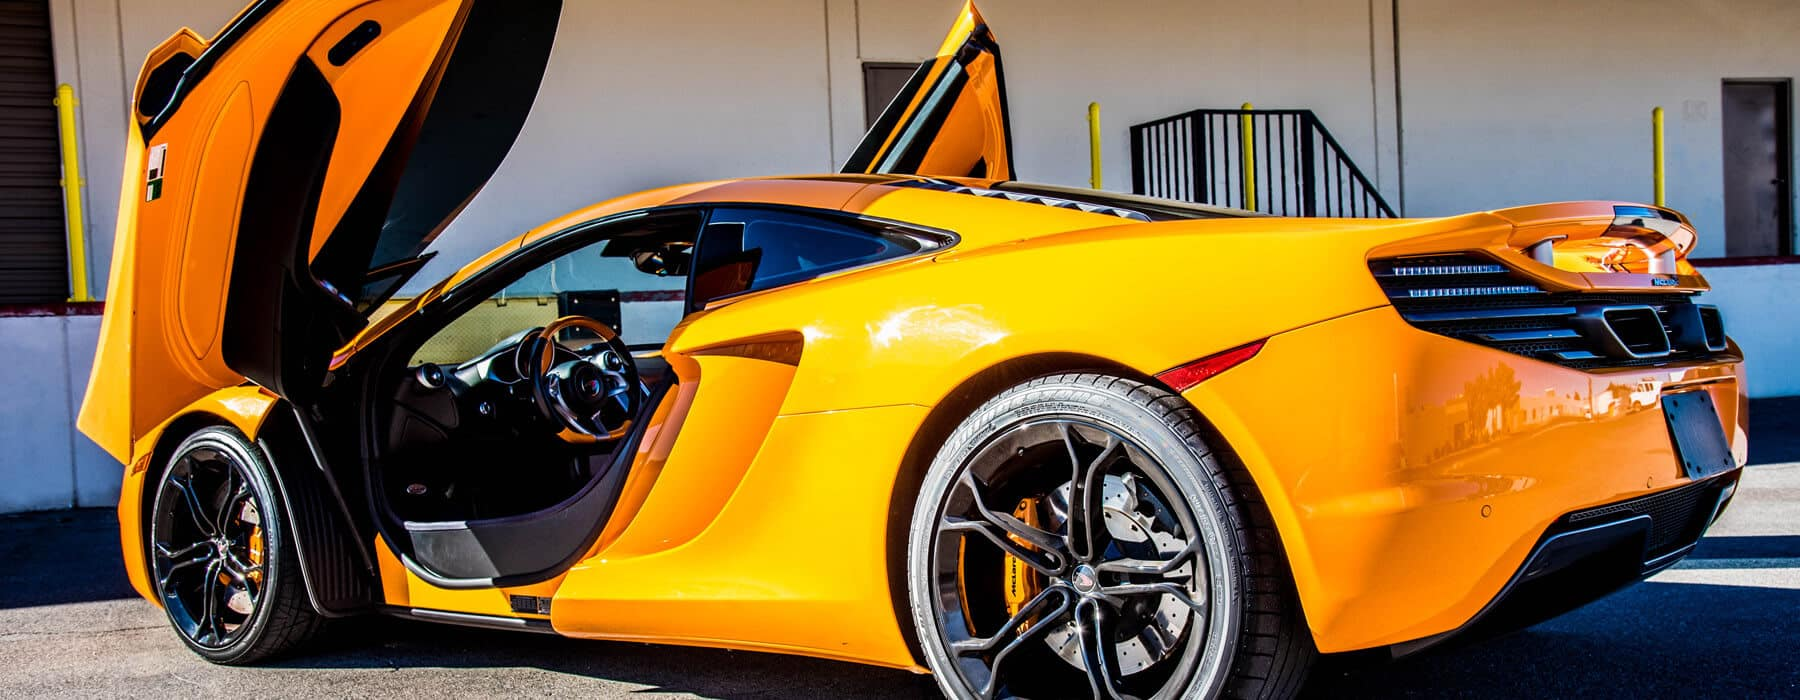 Exotic Car Rental Las Vegas >> Las Vegas Sports / Exotic Car Rental - Ferrari, Lamborghini, Slingshot Audi Unlimited Miles